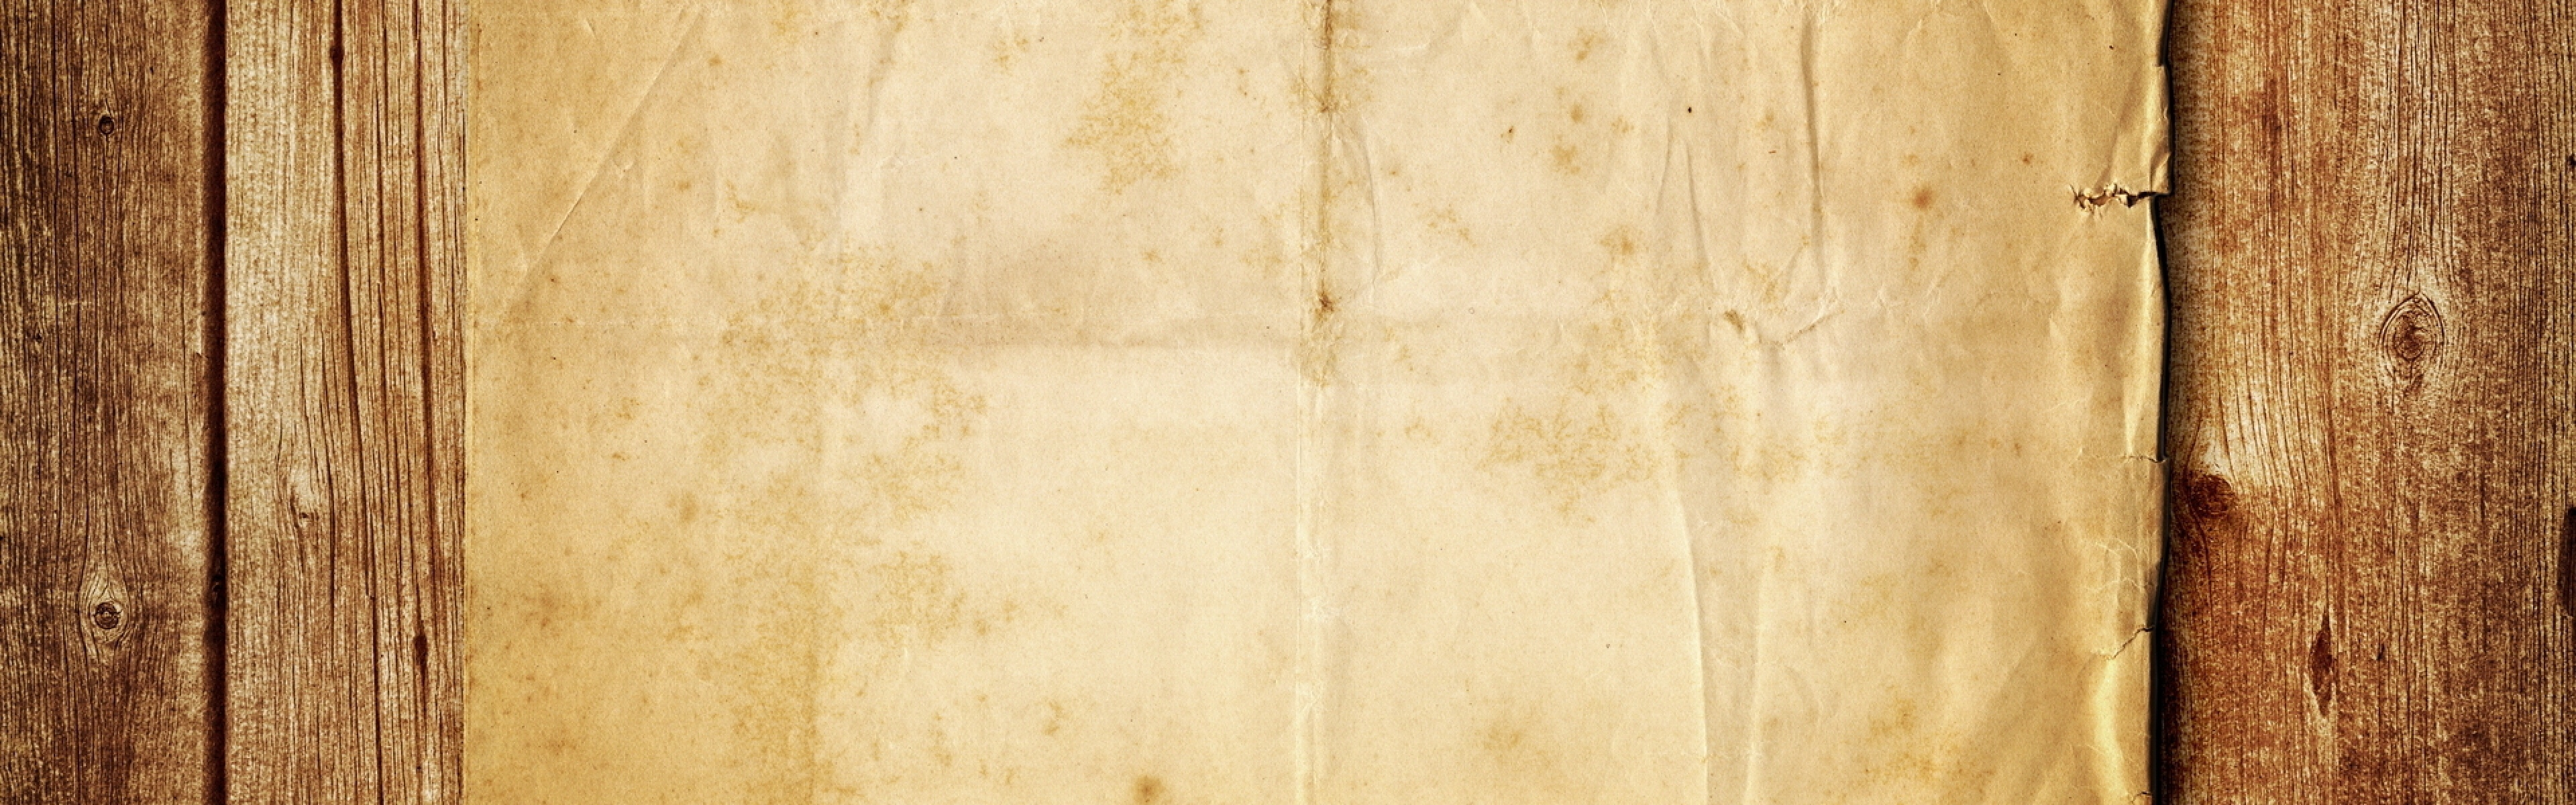 3840x1200 Wallpaper wood, paper, background, surface, lights